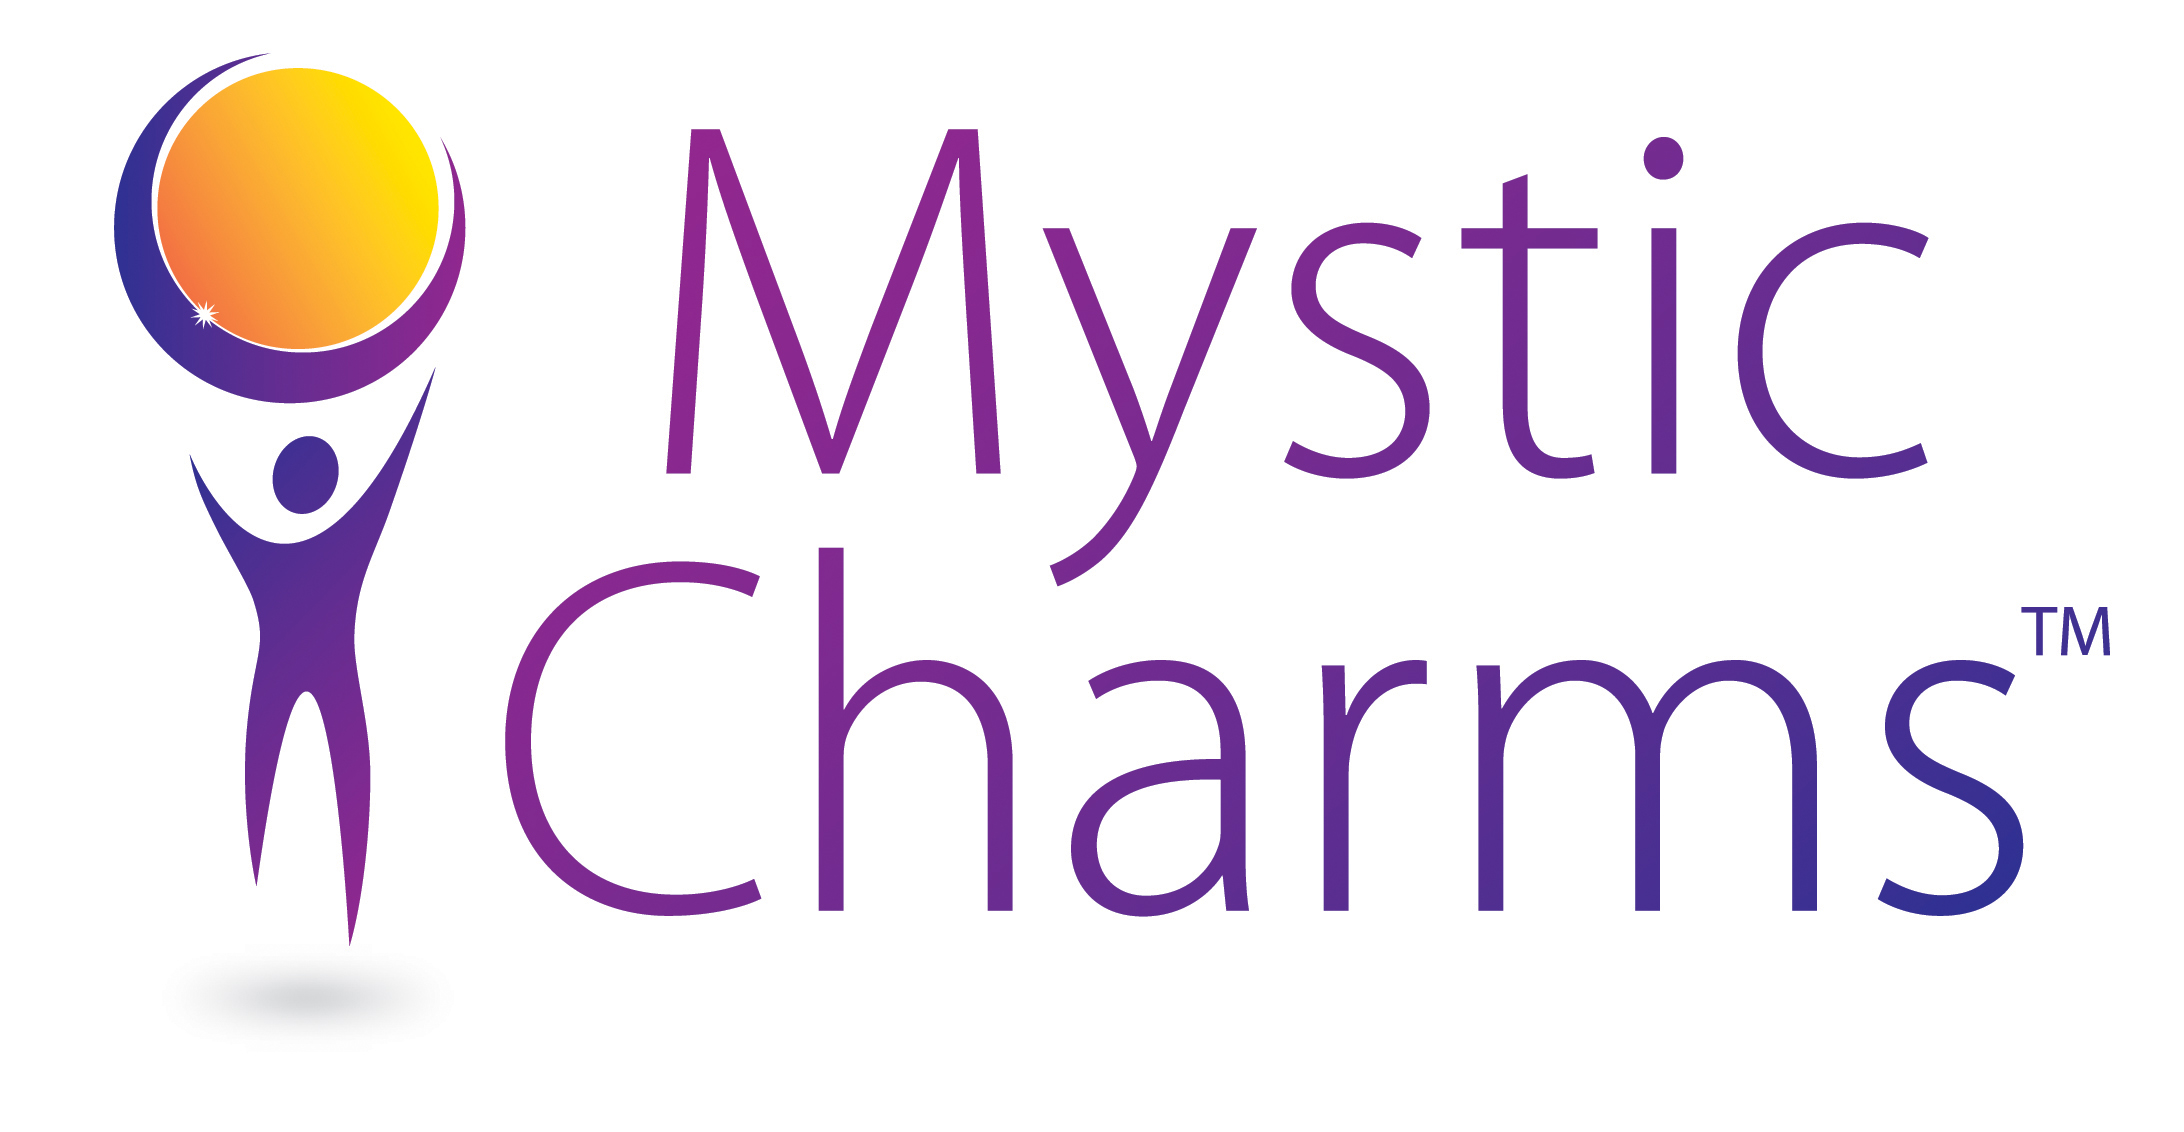 Flexible Business Idea: Mystic Charms